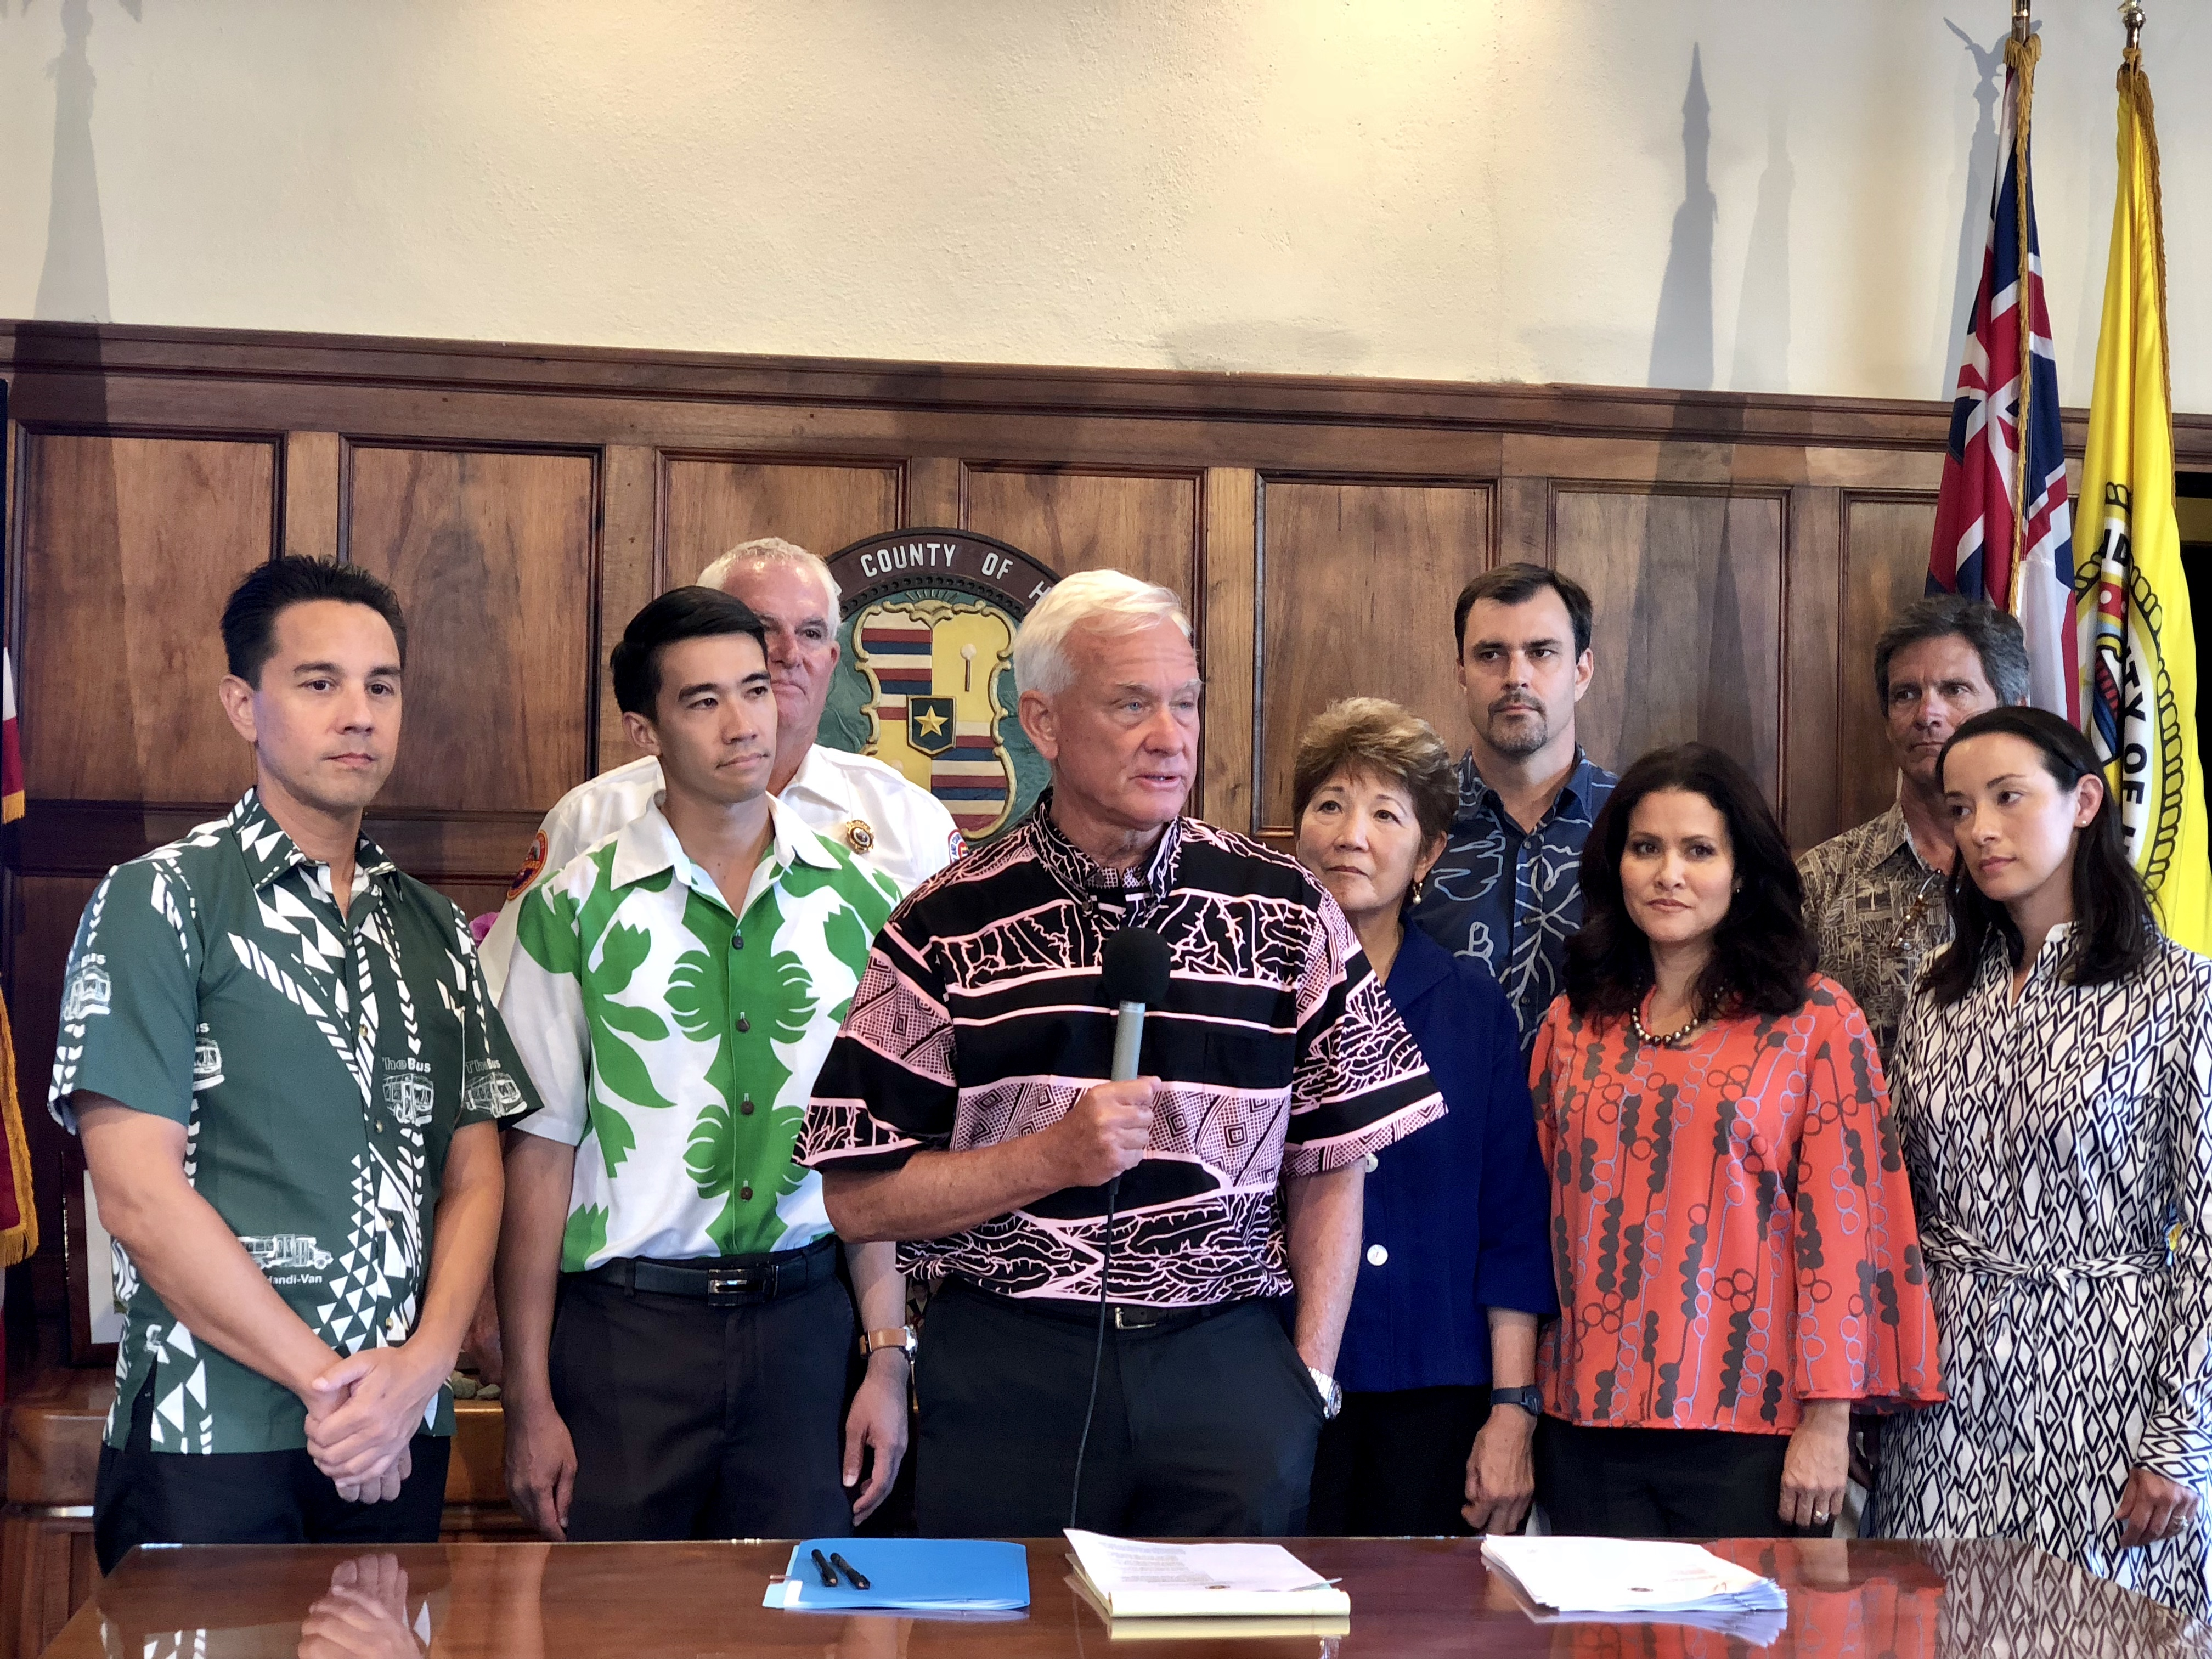 Climate_Change_and_SLR_Press_Conference_07.16.2018.jpg